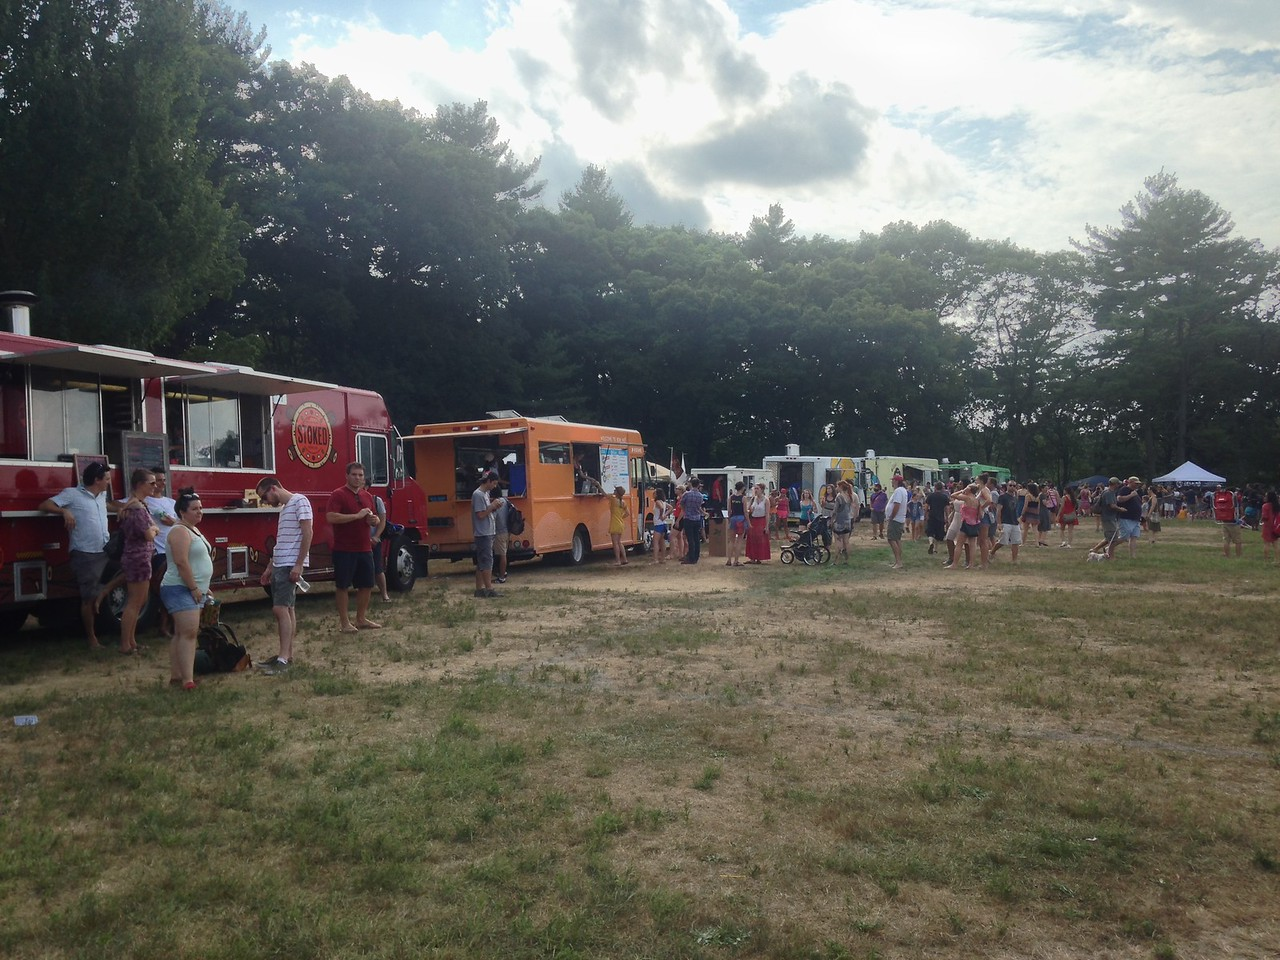 On the other side of Jamaica Pond, I discovered that the JP Music Festival was happening. Lots of Food Trucks selling delicious smelling food, bands playing loud music, lots of people looking happy.